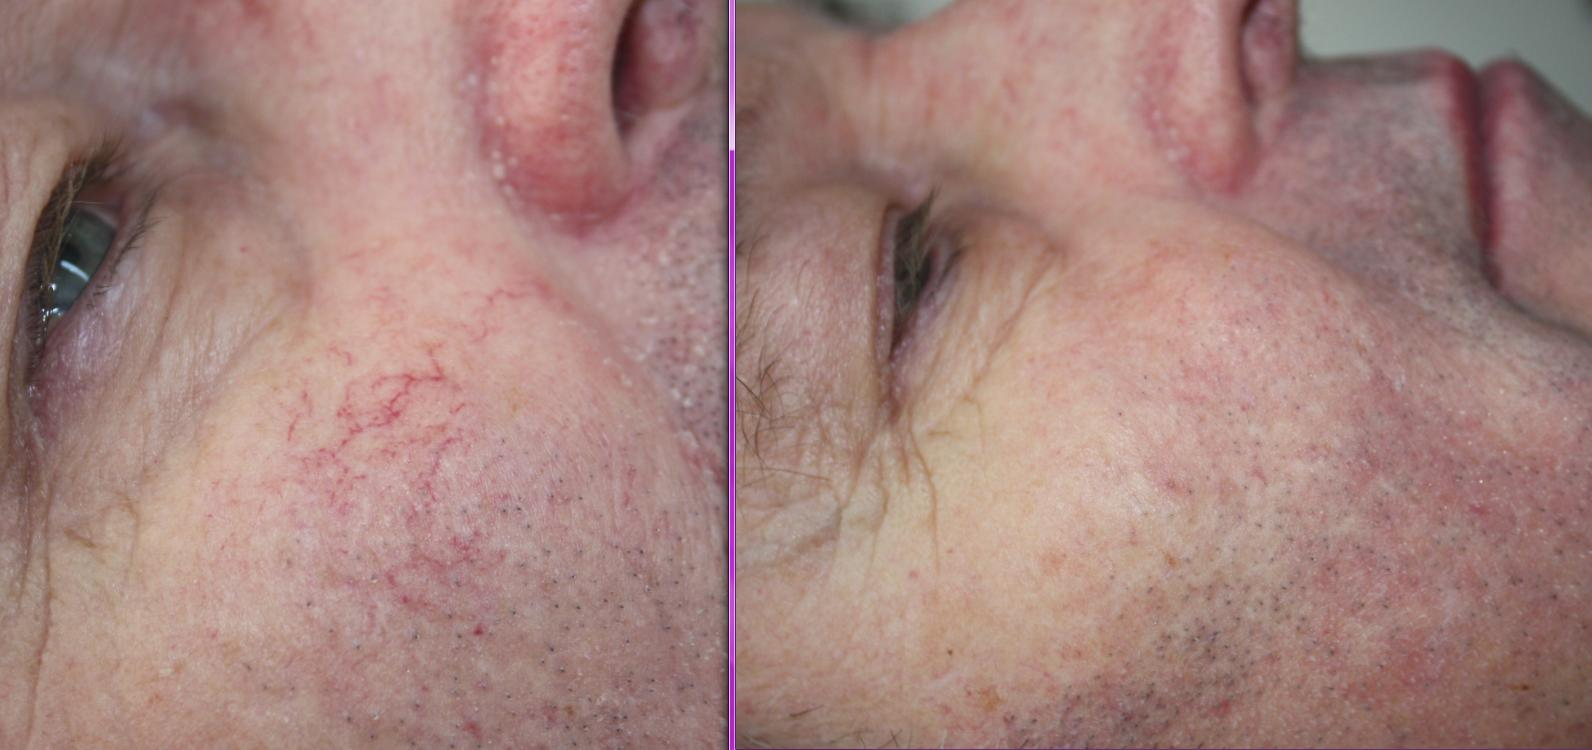 Spider veins on patients face